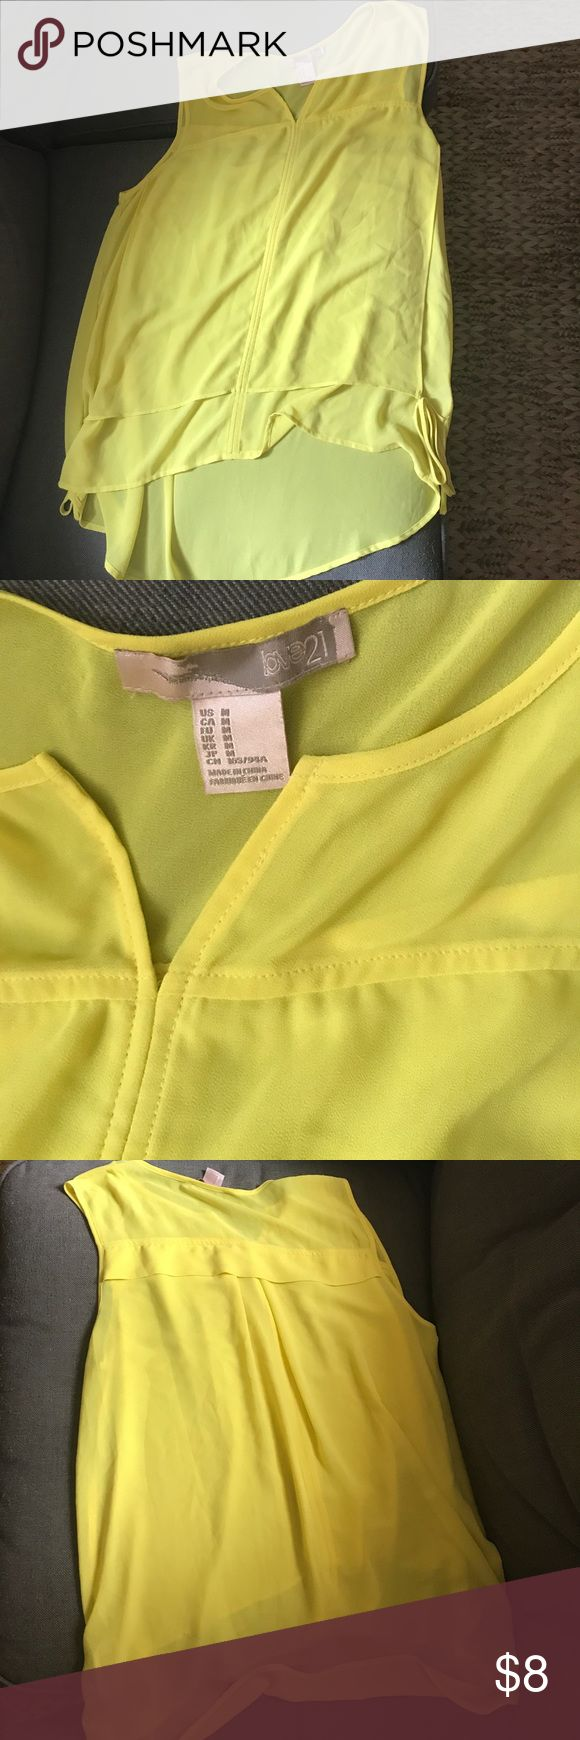 Neon Yellow Top Neon yellow summer top from Forever 21 that is long and flowy, only worn once Forever 21 Tops Blouses